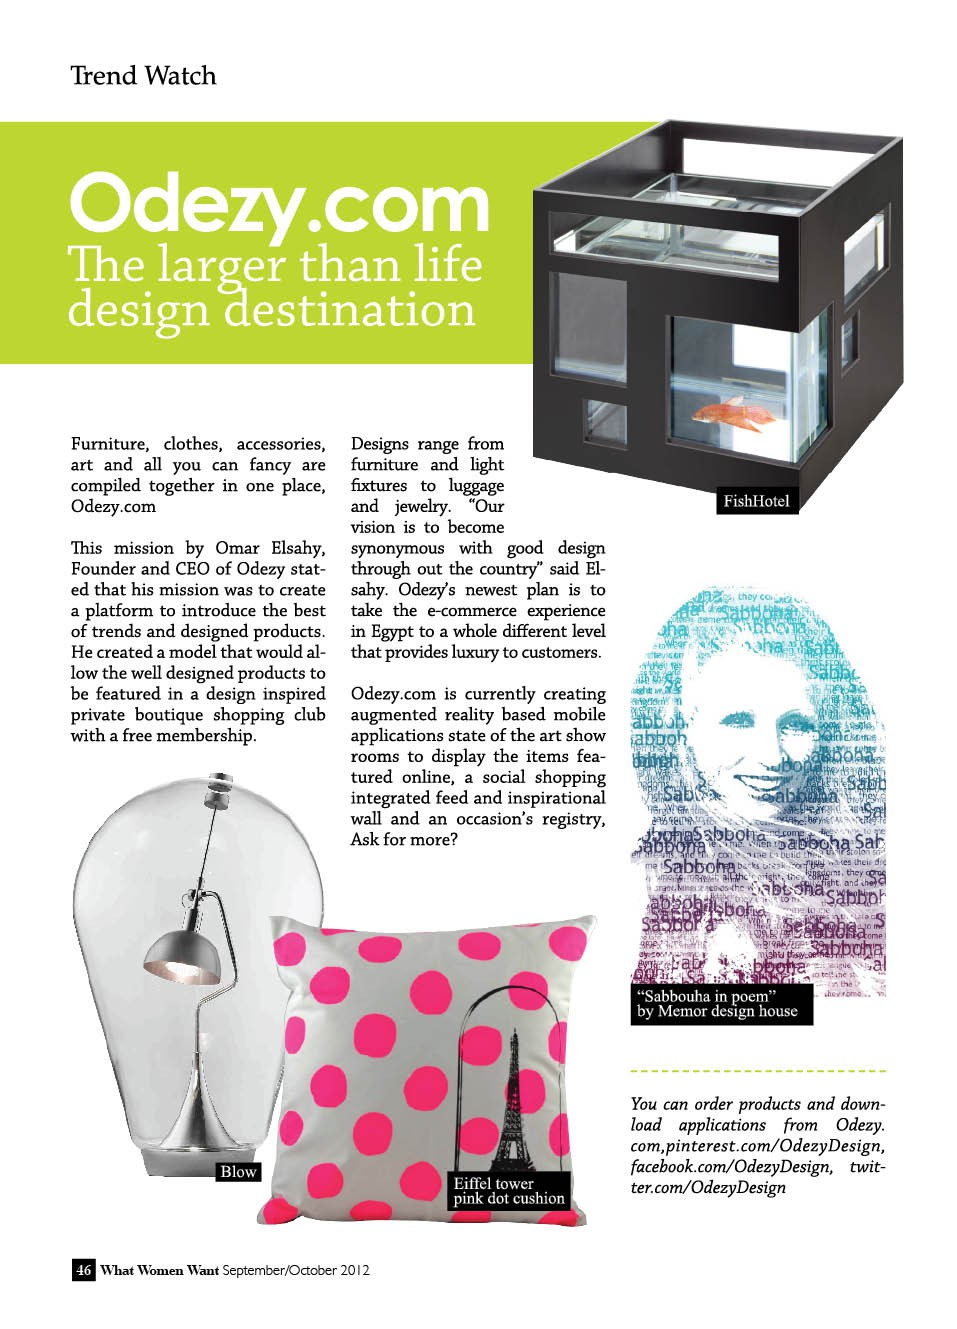 Larger than life design destination, Odezy.com